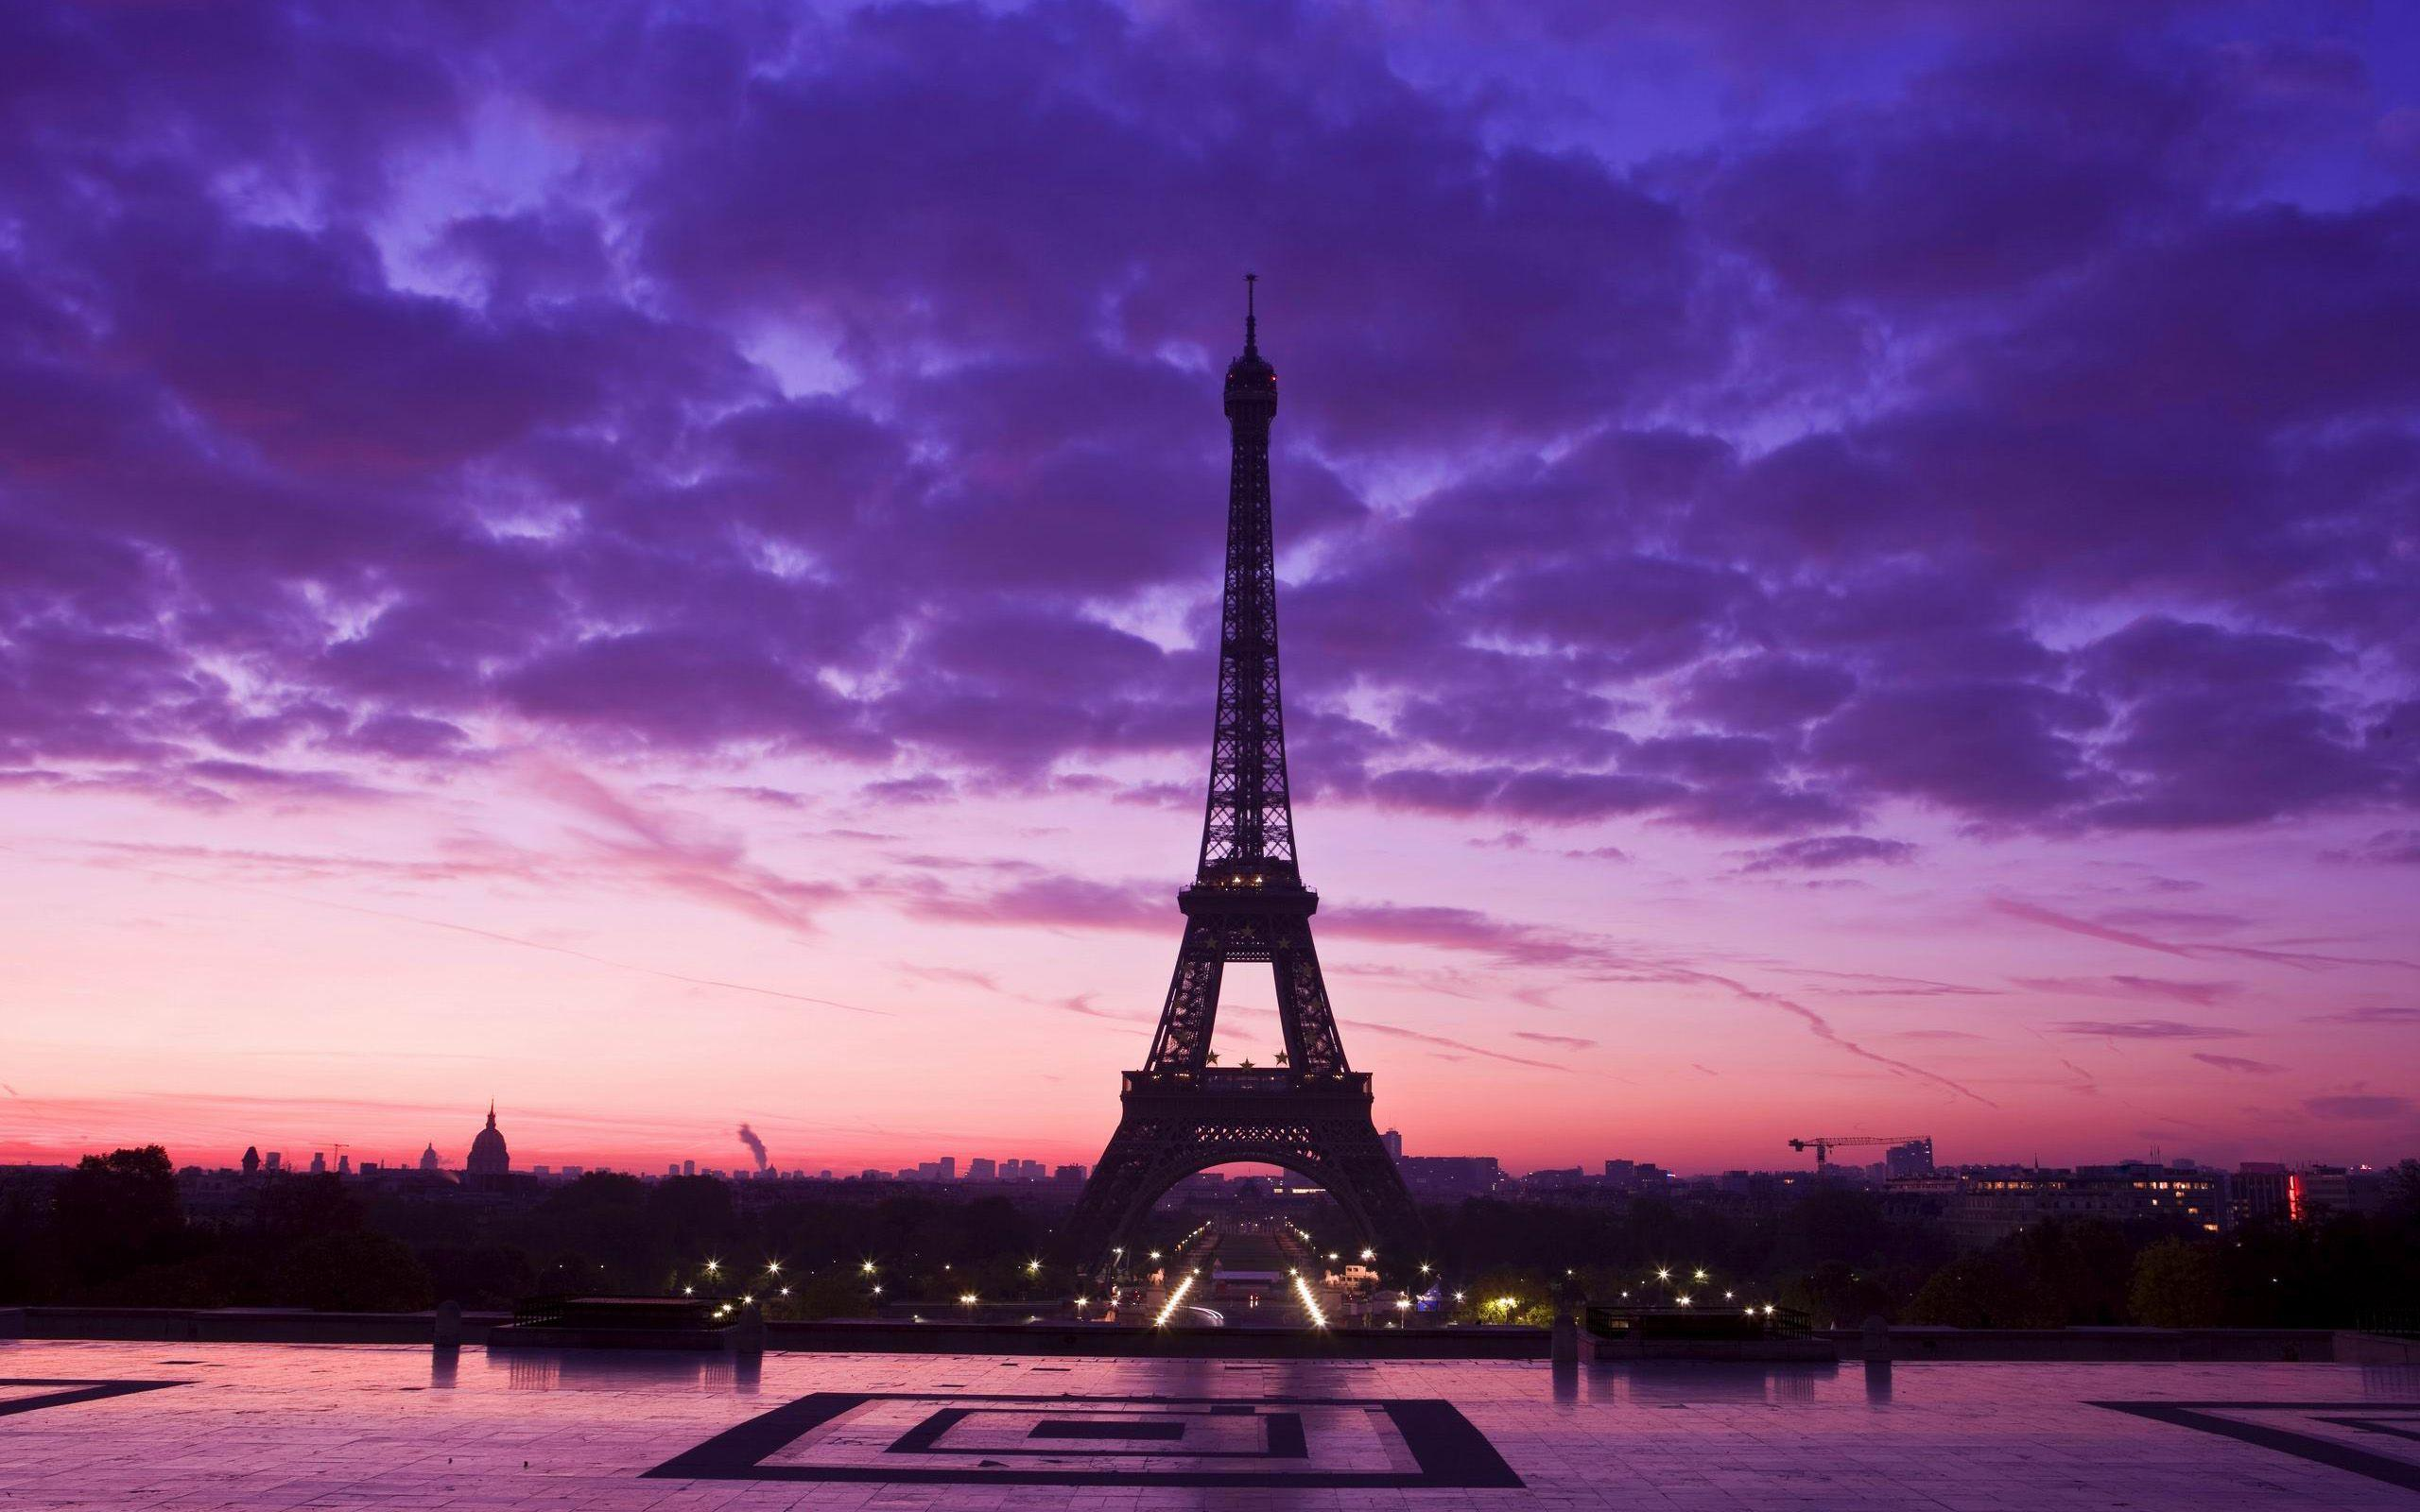 paris wallpaper background 21 -#main